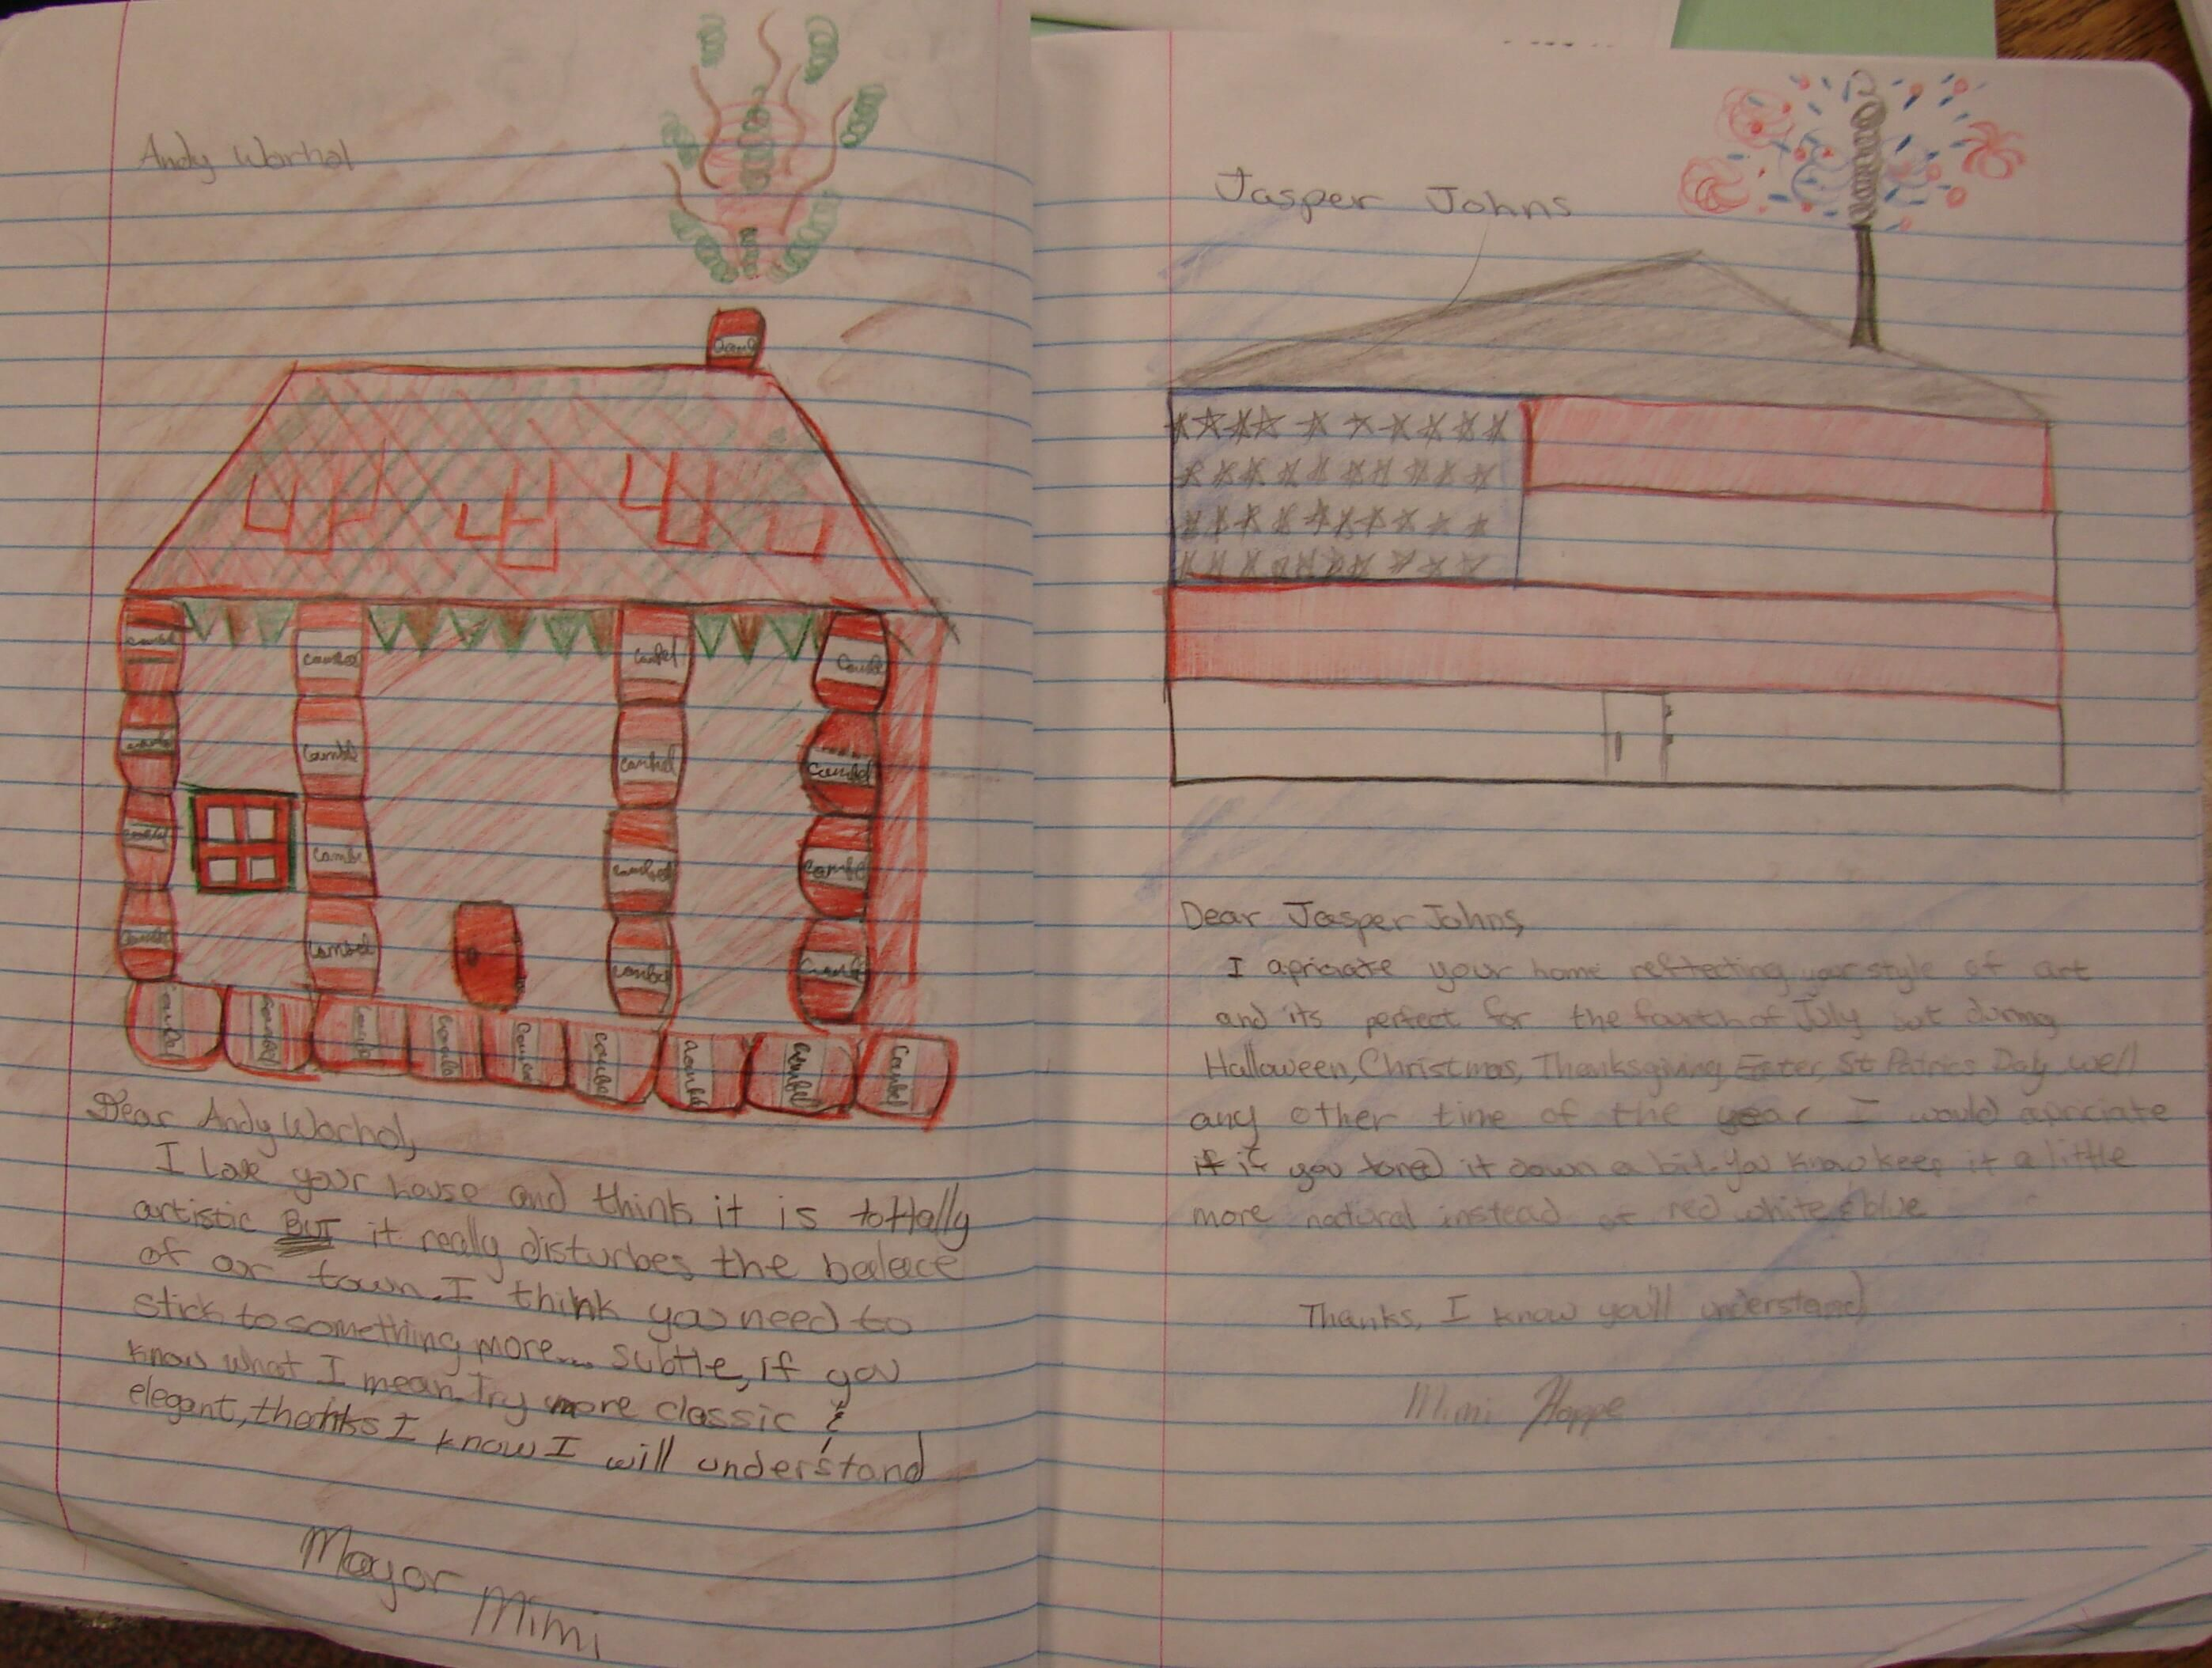 6th grader Meredith took me up on my extra credit challenge of writing imaginary letters of complaint to artistic neighbors she might live next to.  Here are her letters to Andy Warhol and Jasper Johns.  Here is the online write-up for this notebook lesson: http://corbettharrison.com/GT/Pigasso-Mootisse.htm